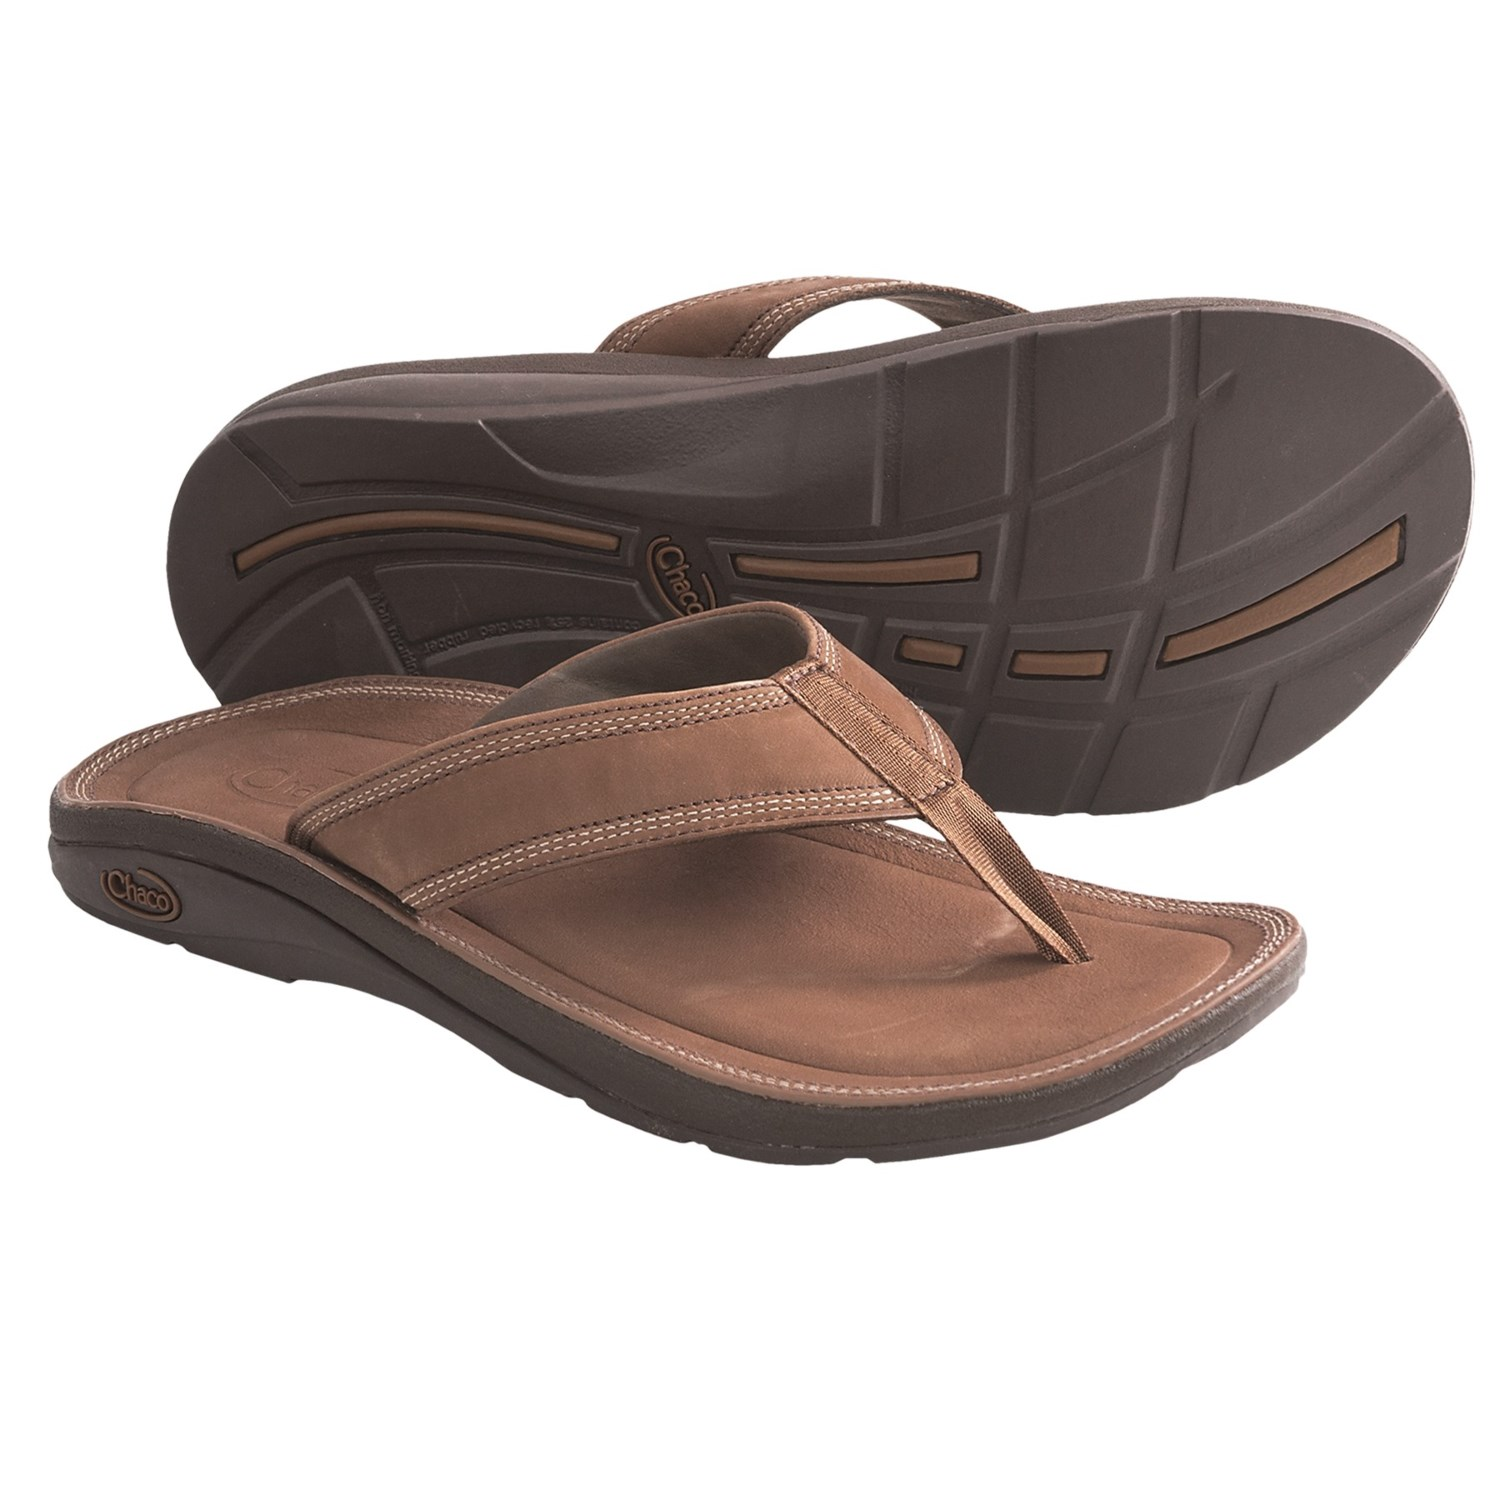 The Best Men's Shoes And Footwear: Handmade Sandals, Leather Sandals, Mens Sandals, Womens Sandals, Mens Leather Sa. Find this Pin and more on Men's sandals by Lucas Mejia. handmade sandals made from full-grain leather.